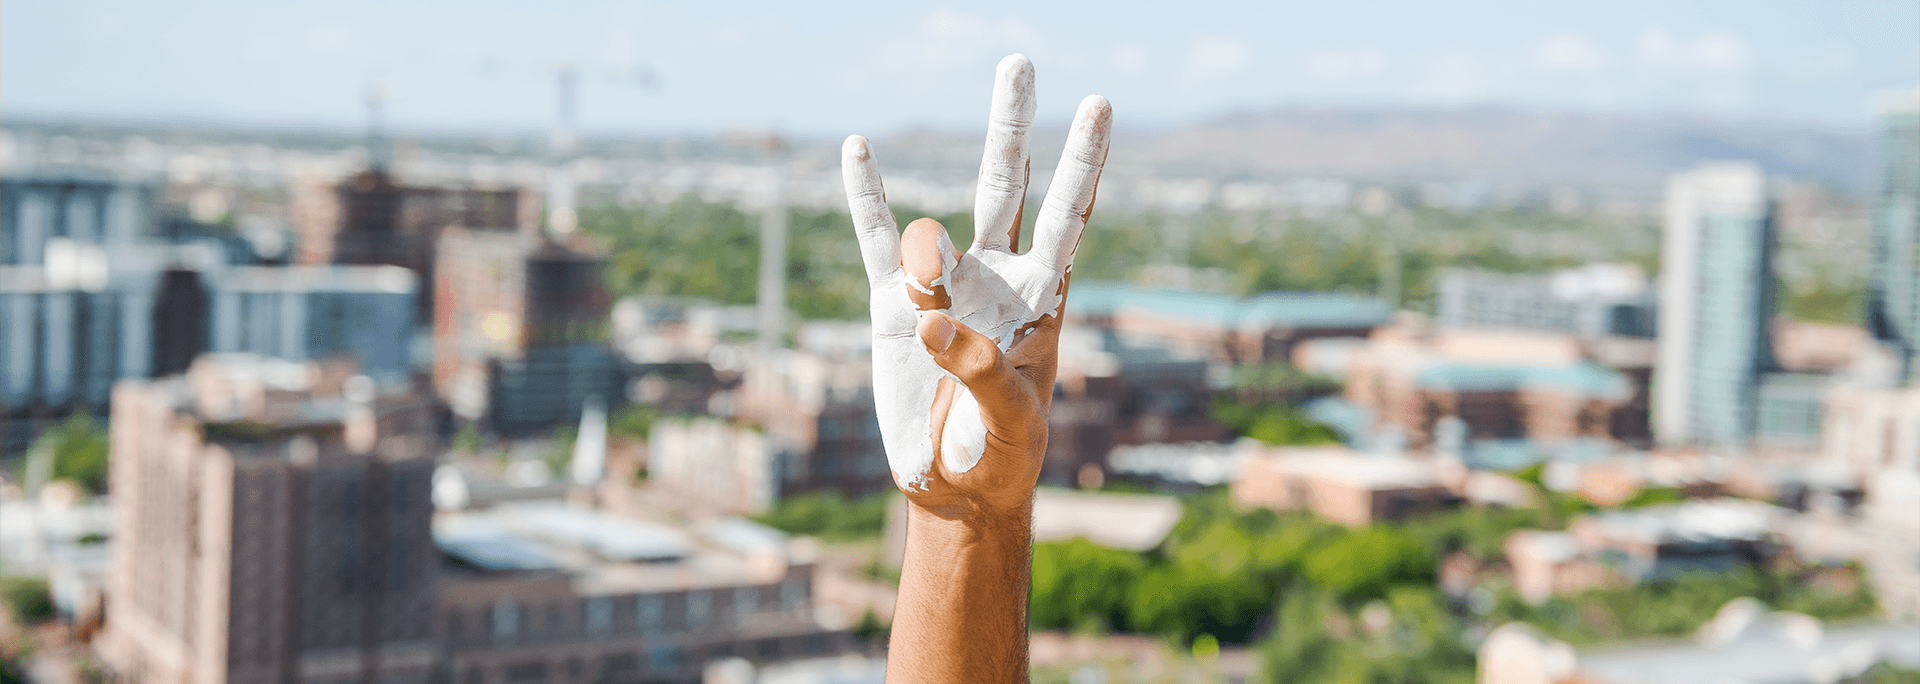 A hand covered in paint holding up the Sun Devil pitchfork sign in front of a city background.